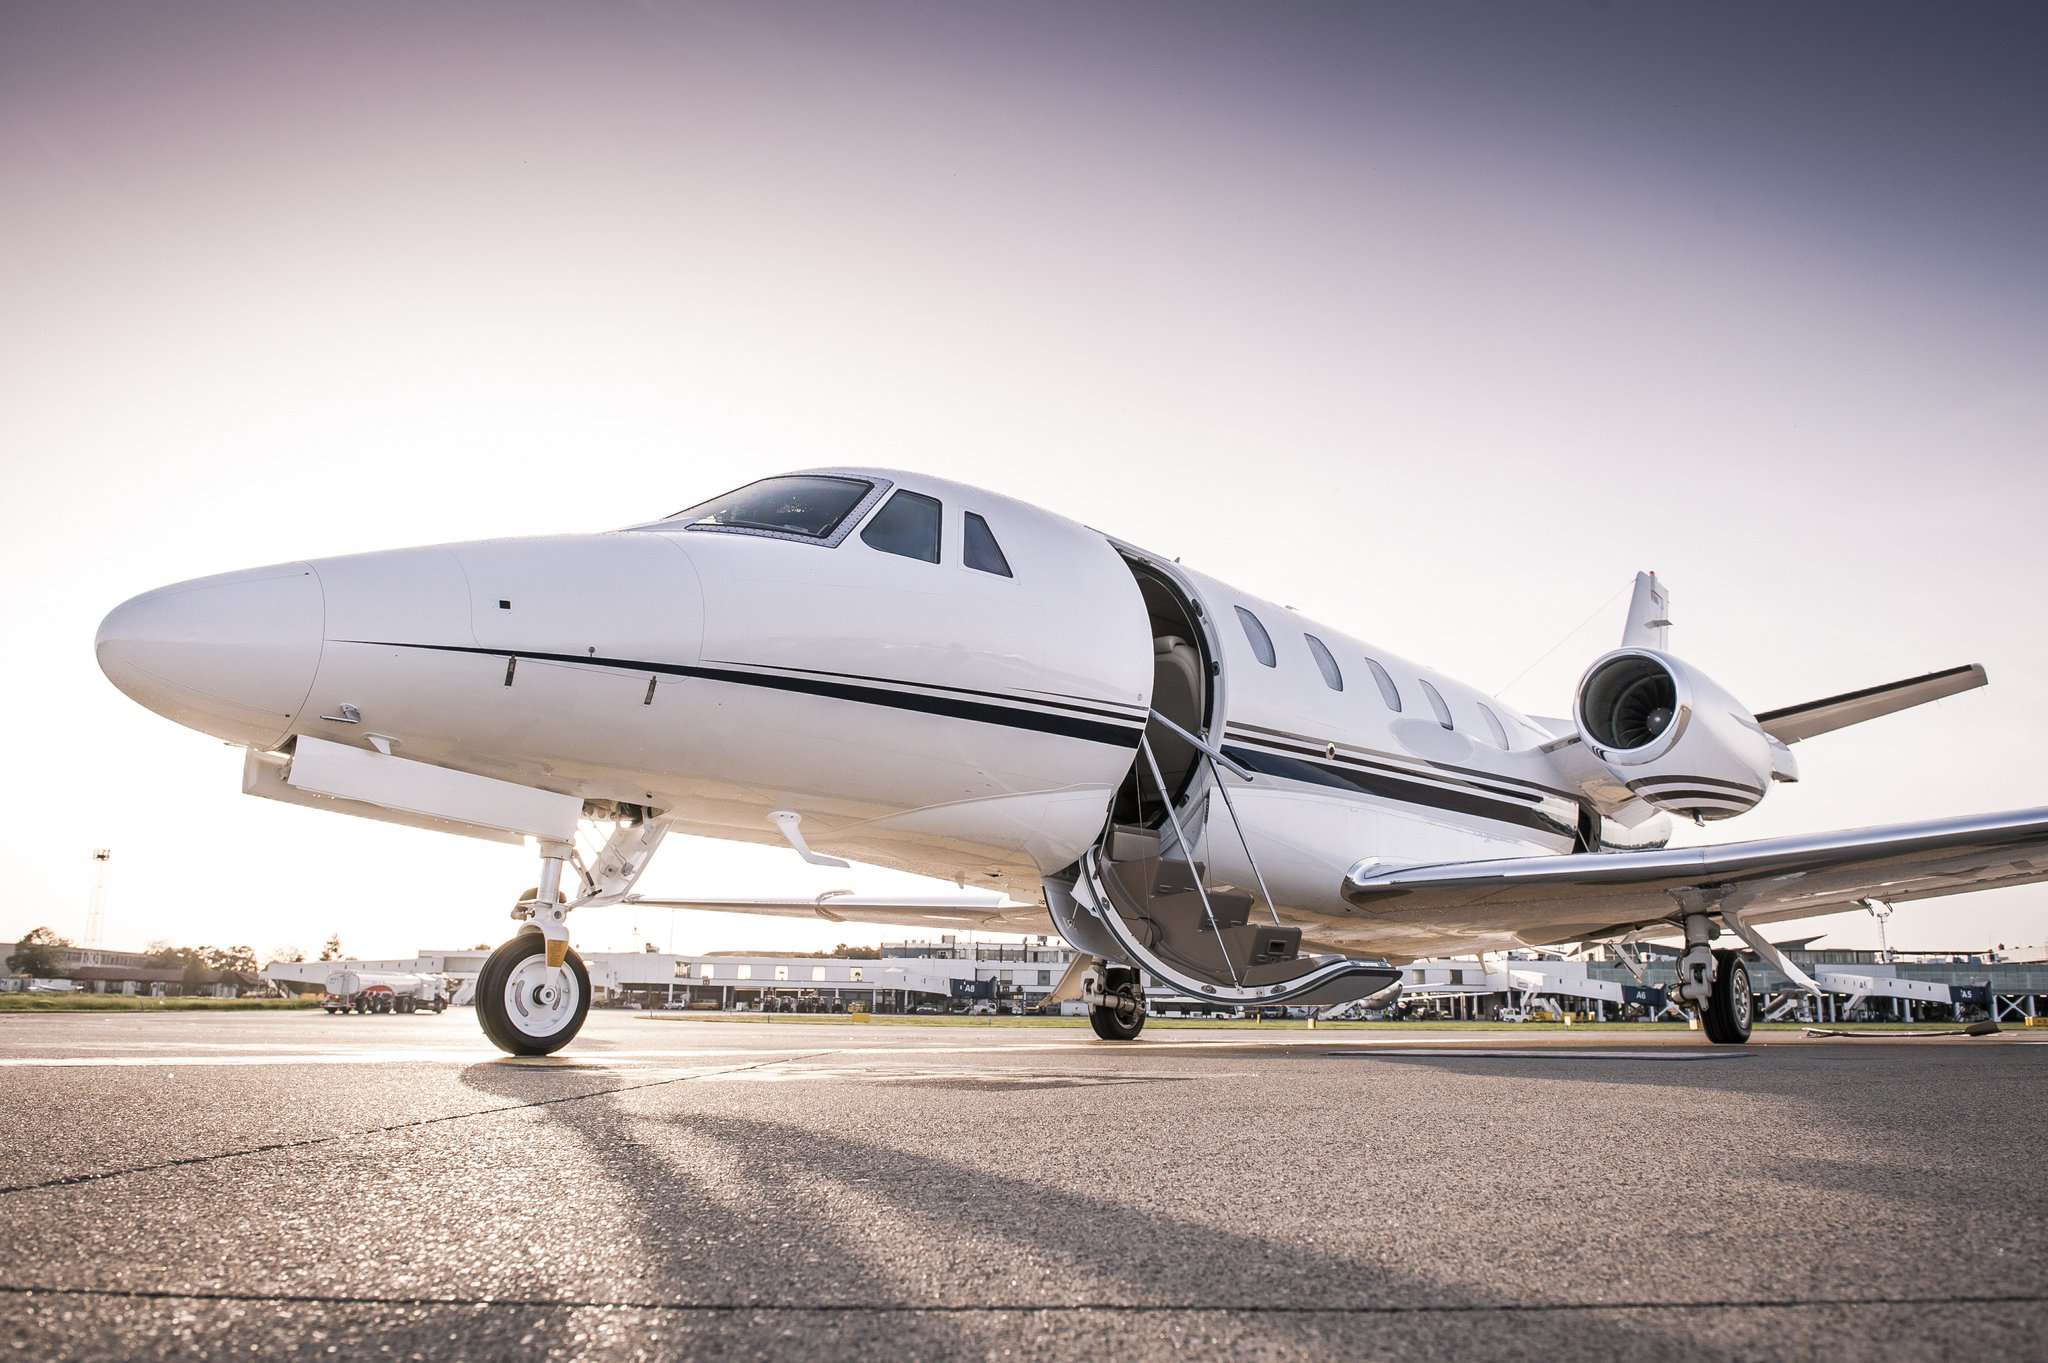 With another week completed - Where would you fly to?⠀ ⠀ #inspiration #aviation #aircraft #pilot #traveller #flying #jetsetter #LuxuryTravel #luxuryrealestate #superyacht #yachting #supercars #milliondollarlisting #jetlife #highend #luxurylifestyle #Millionaire #jetcharter https://t.co/J4g8r5141C